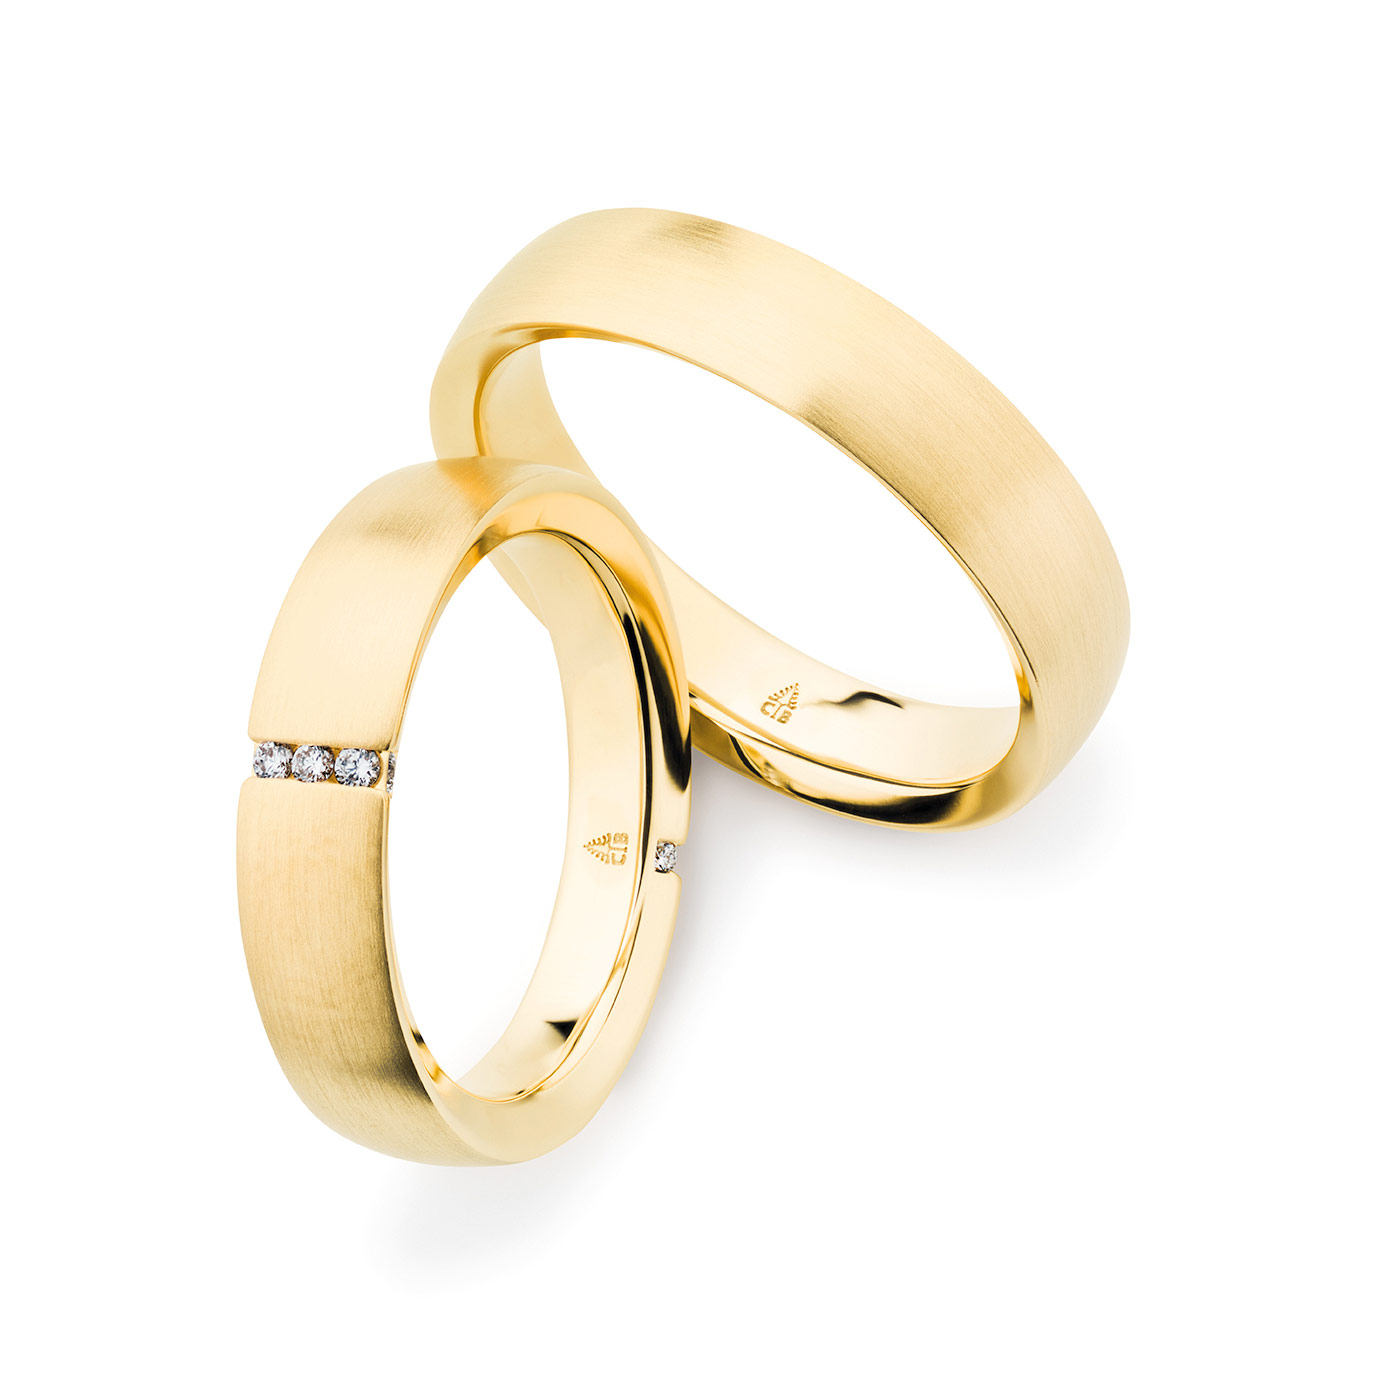 The 585 Yellow Gold Band Is Split On Either Sidea Within Best And Newest Vertical Diamond Row Wedding Bands (View 16 of 25)